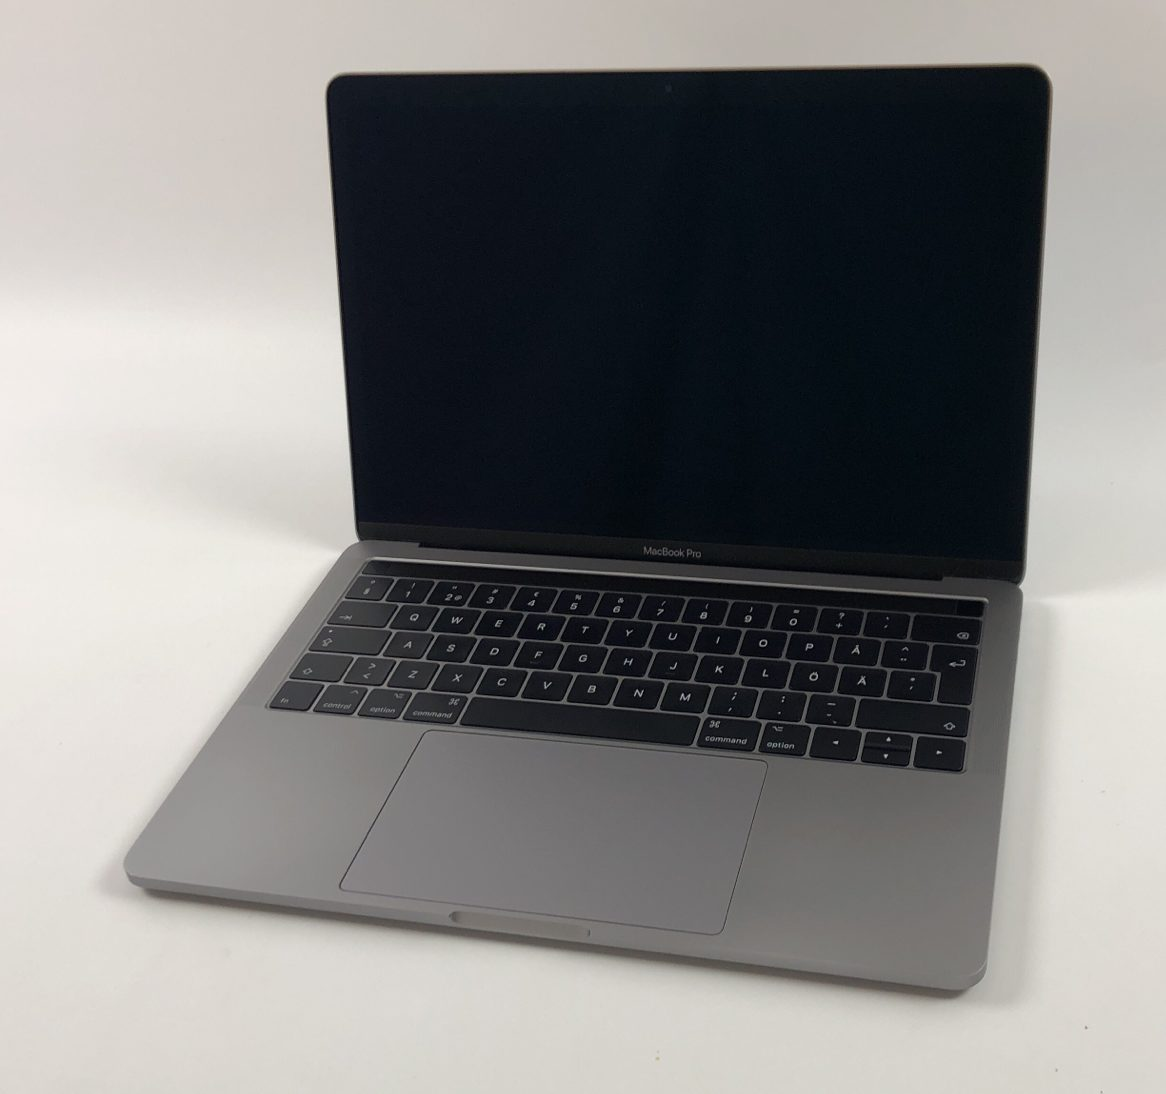 "MacBook Pro 13"" 4TBT Late 2016 (Intel Core i5 2.9 GHz 16 GB RAM 256 GB SSD), Space Gray, Intel Core i5 2.9 GHz, 16 GB RAM, 256 GB SSD, Kuva 1"